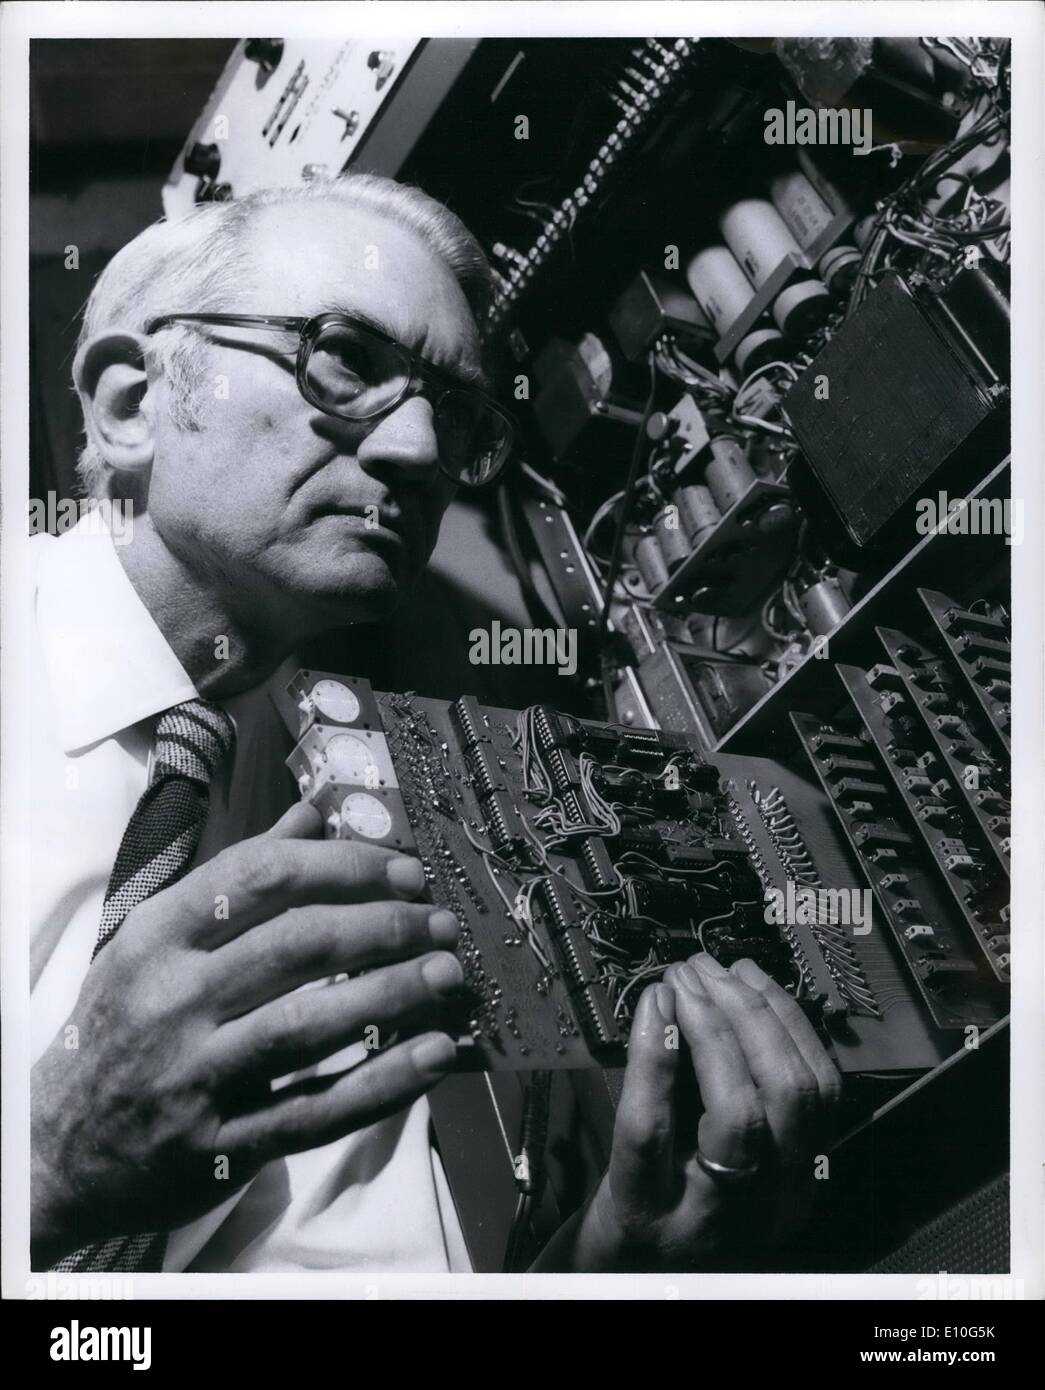 Jan. 01, 1973 - The prototype of an electronic device that will collect data that will aid in the design of a worldwide satellite navigation and communication system is inspected by Roy E. Anderson, a consulting engineer at the General Electric Research and Development Center in Schenectady, N.Y. The ''automatic data collection platform'' will be used to measure strength variations in certain radio signals transmitted from a geostationary space satellite. Mr. Anderson is holding part of the command-and-control circuitry that will be used to operate the device via satellite - Stock Image